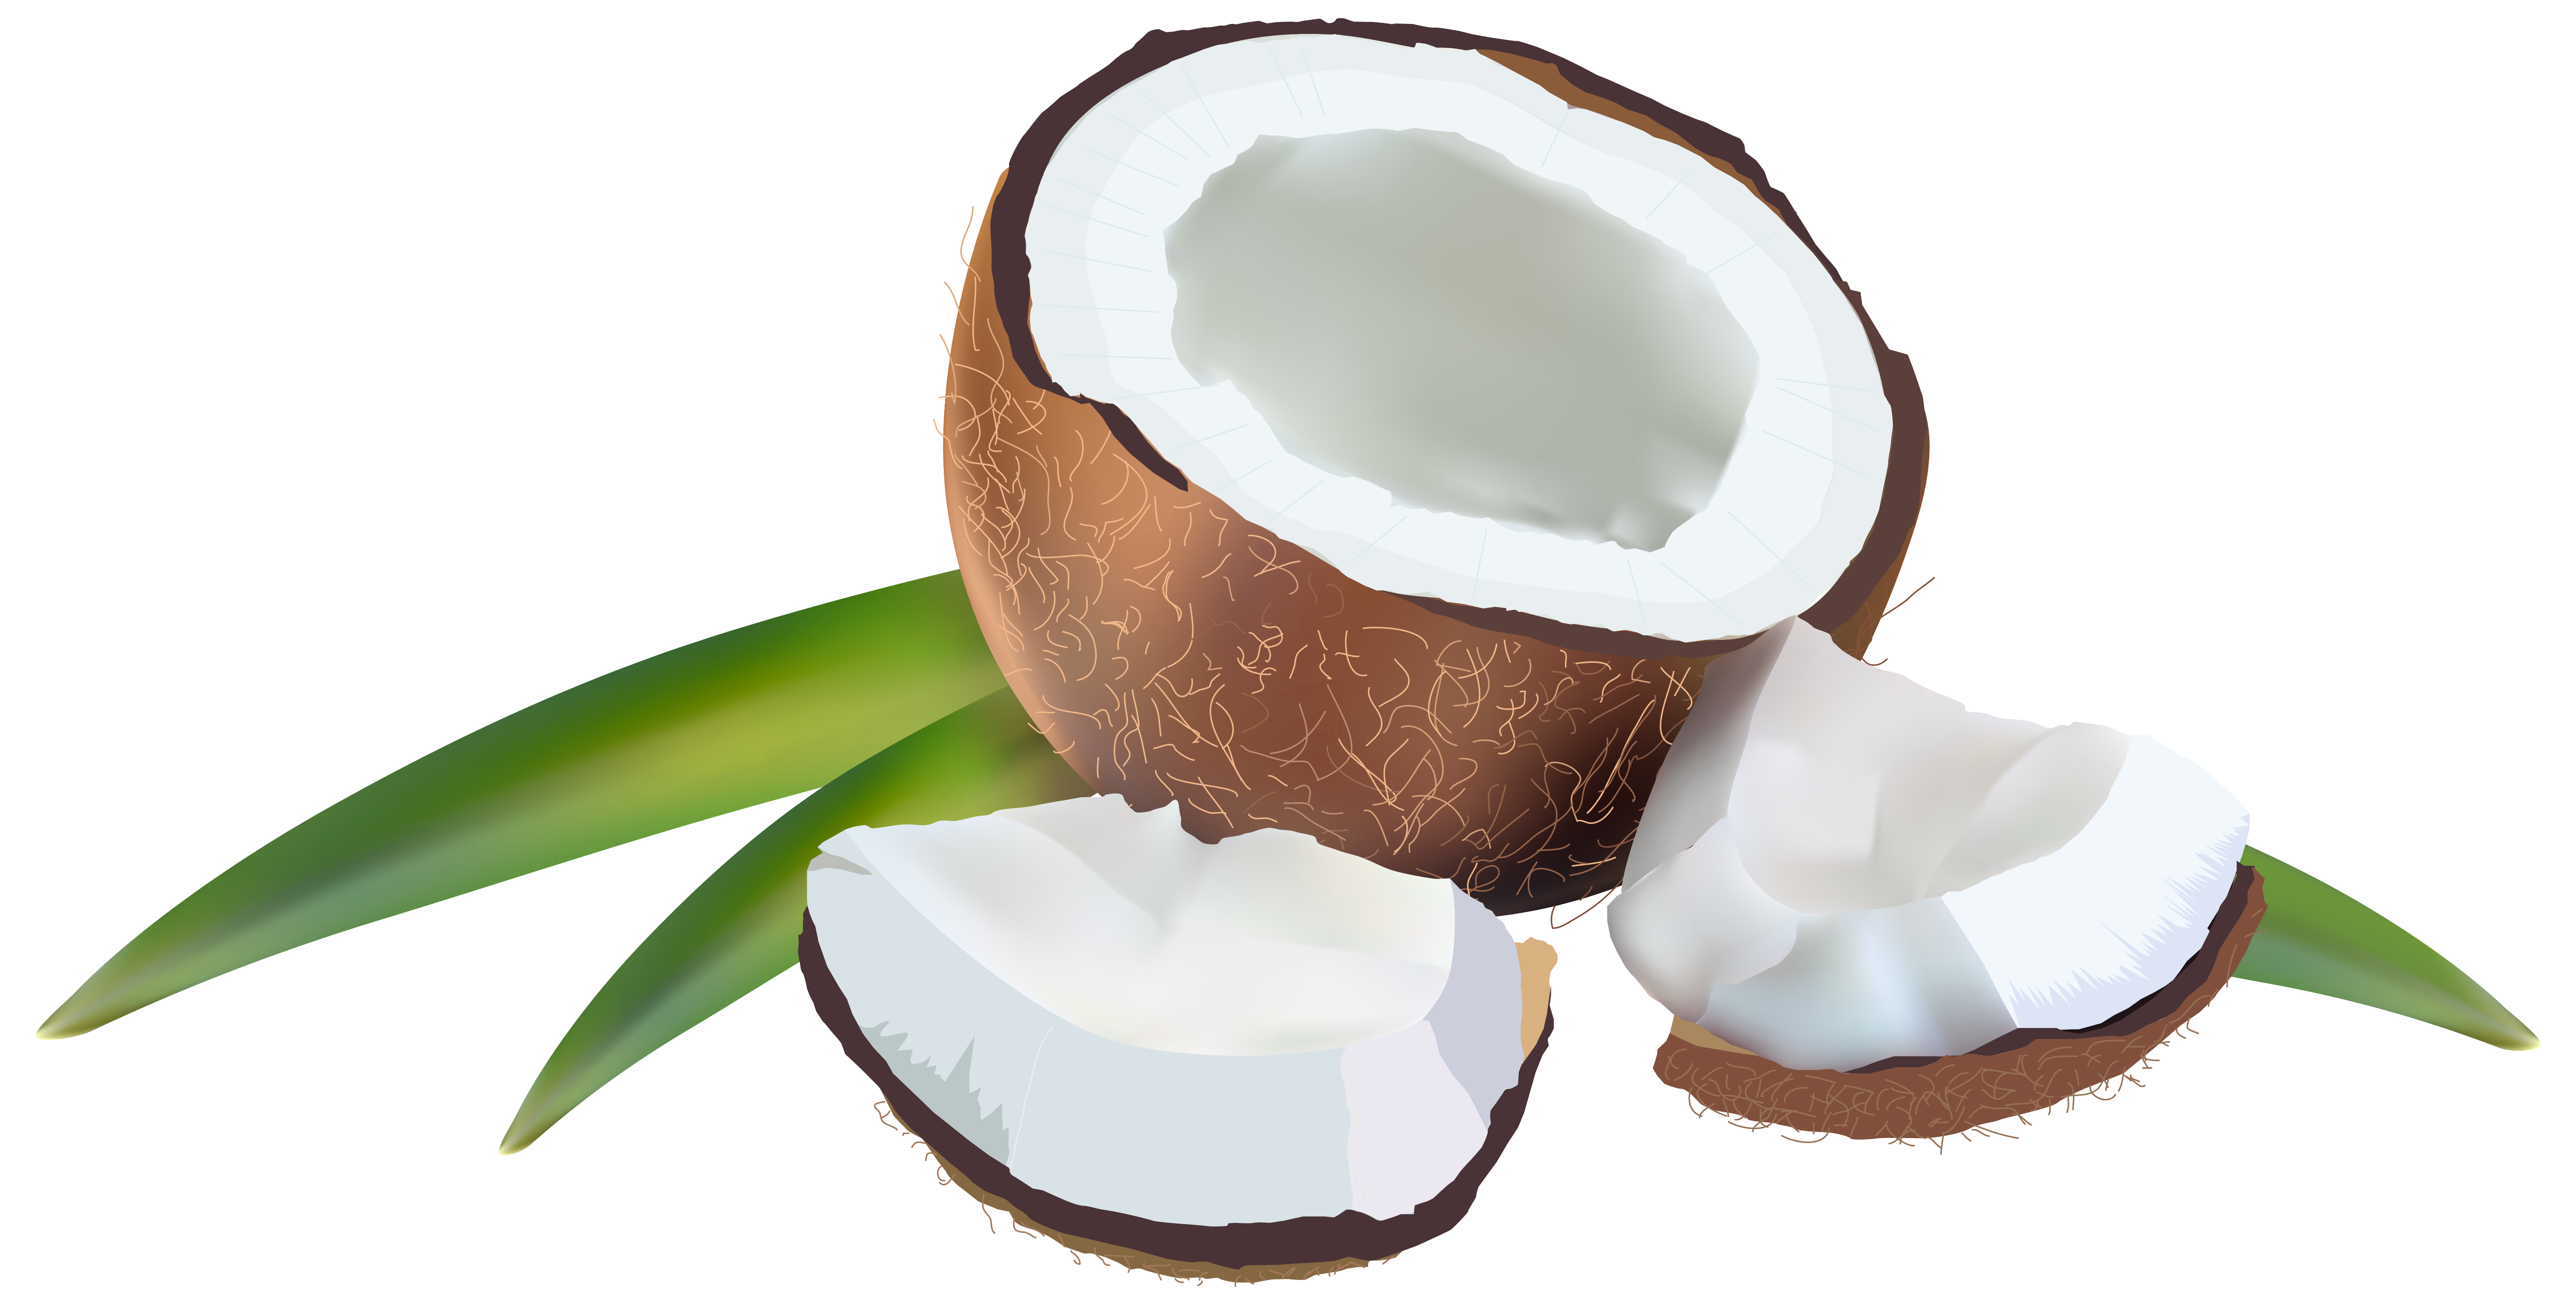 Coconut clipart fresh. With leaves png image